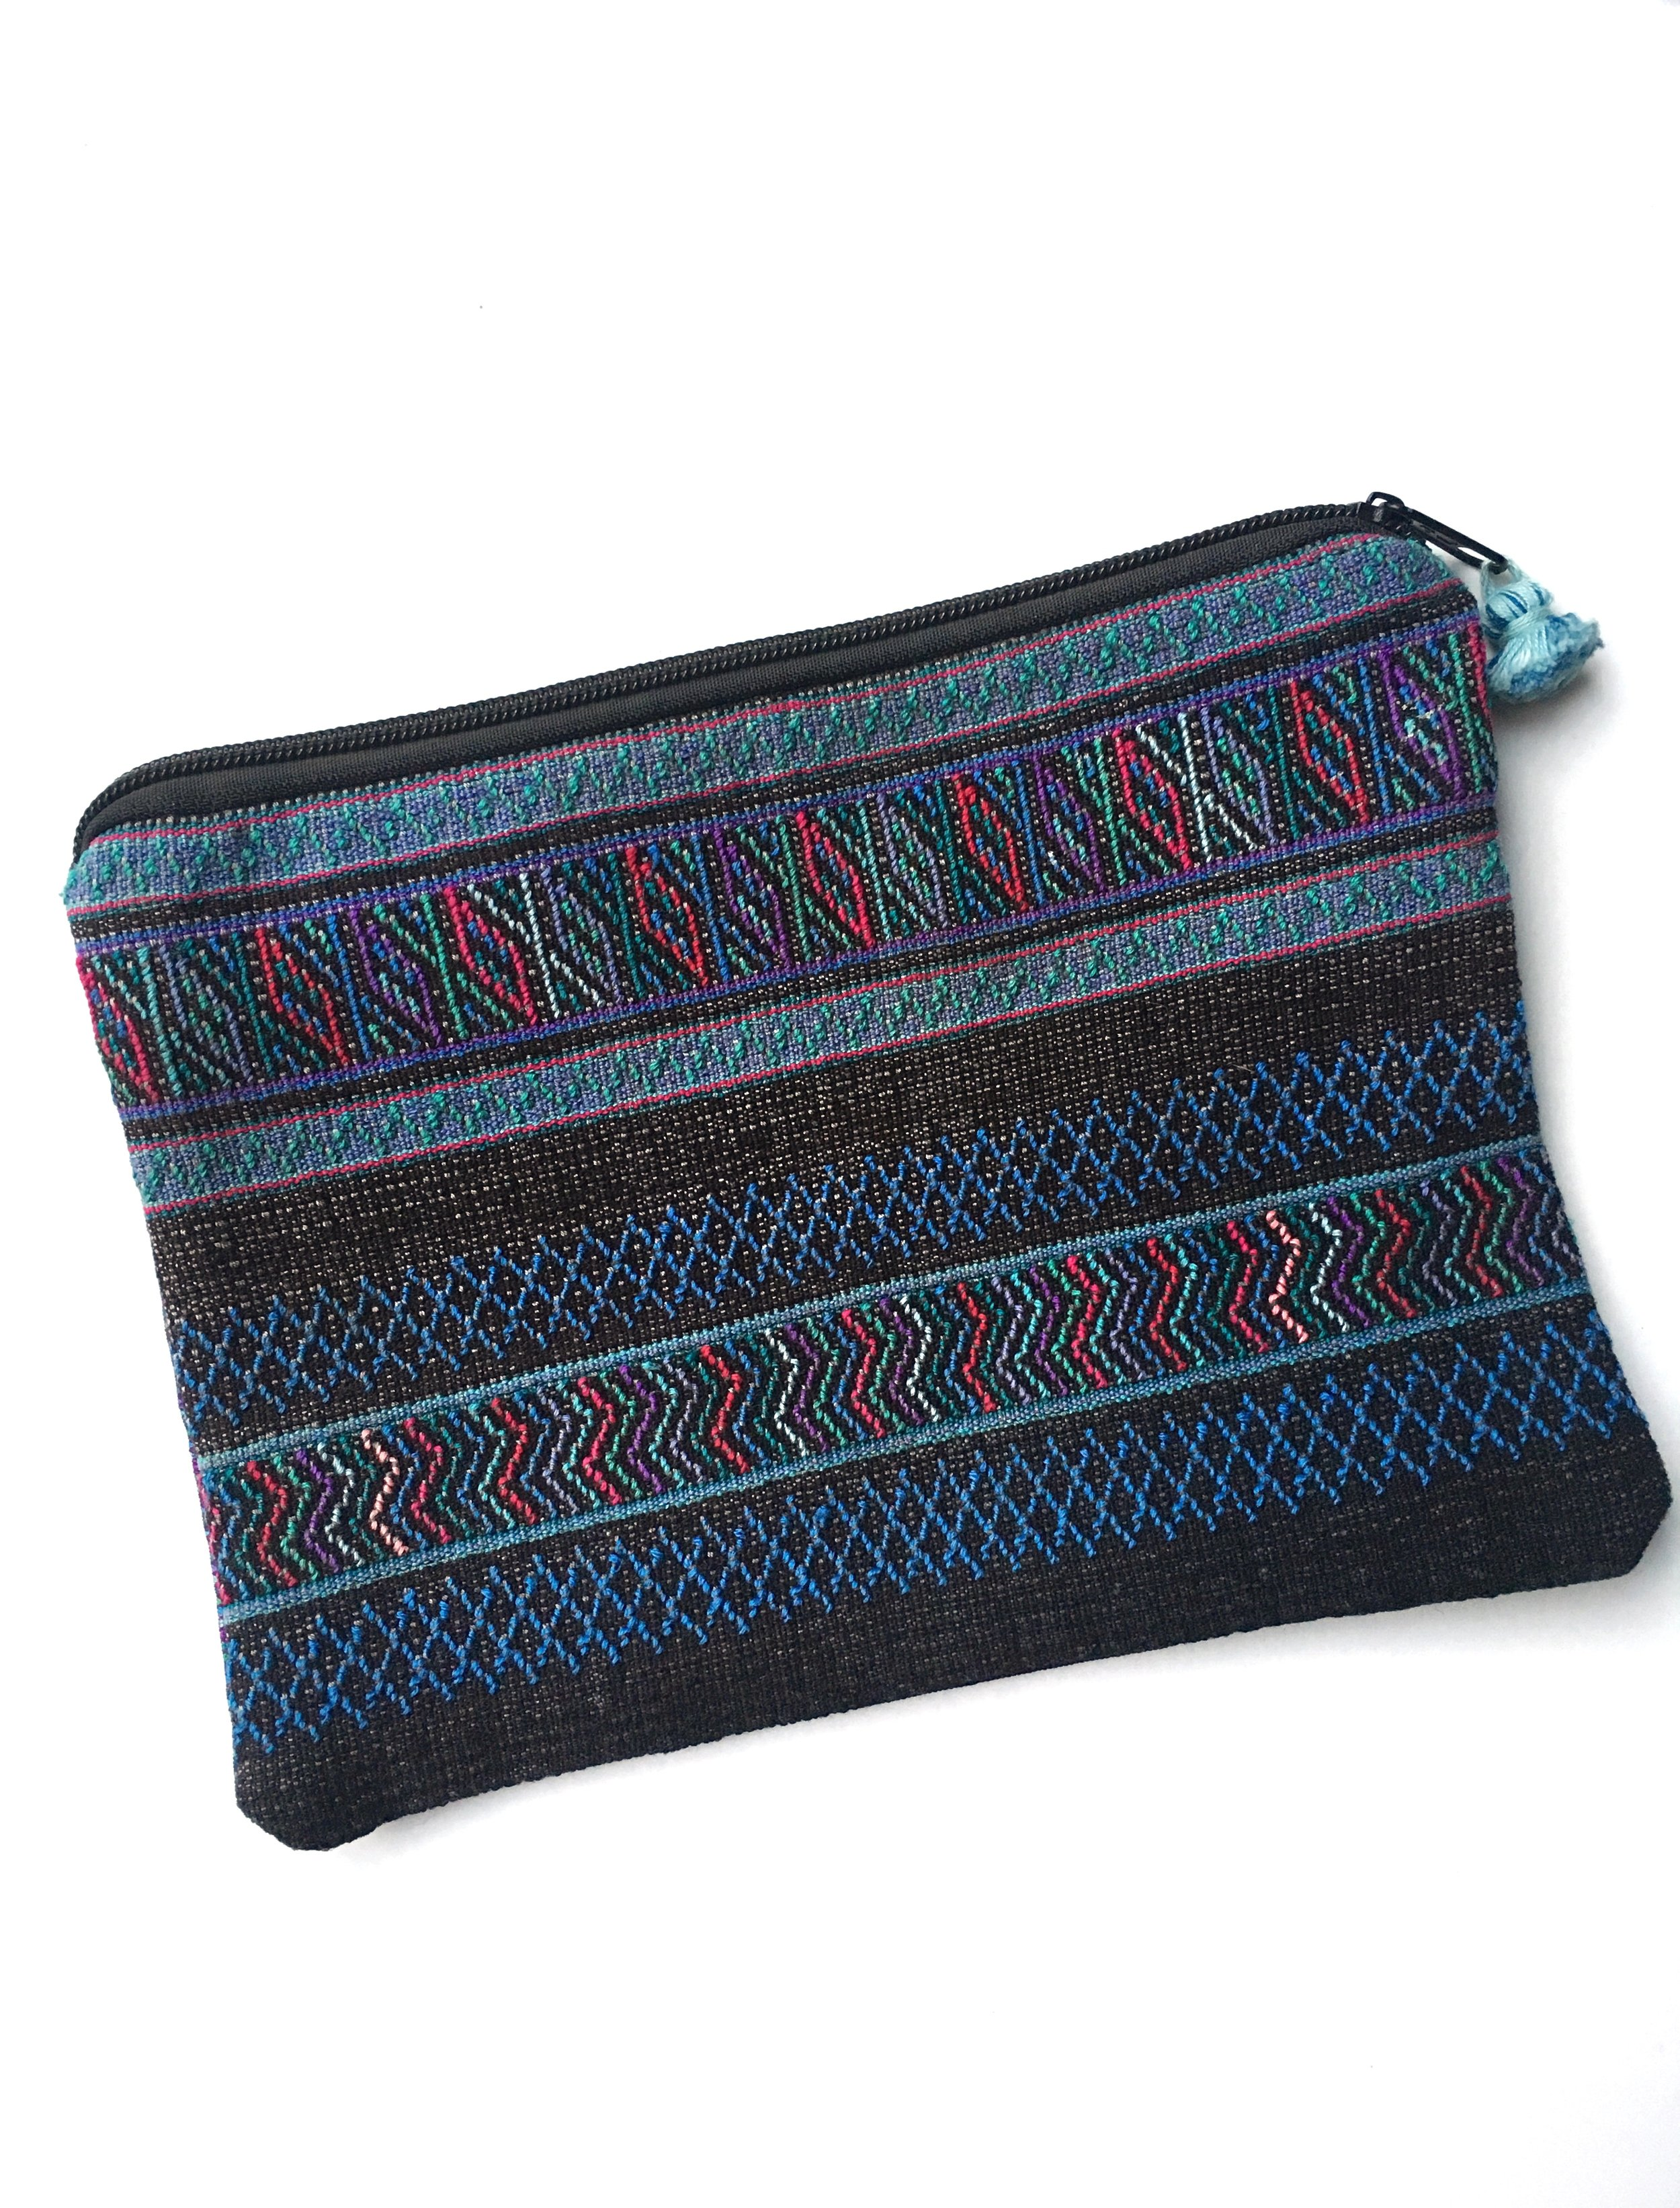 NOMAD TRAVEL POUCH - LAGO